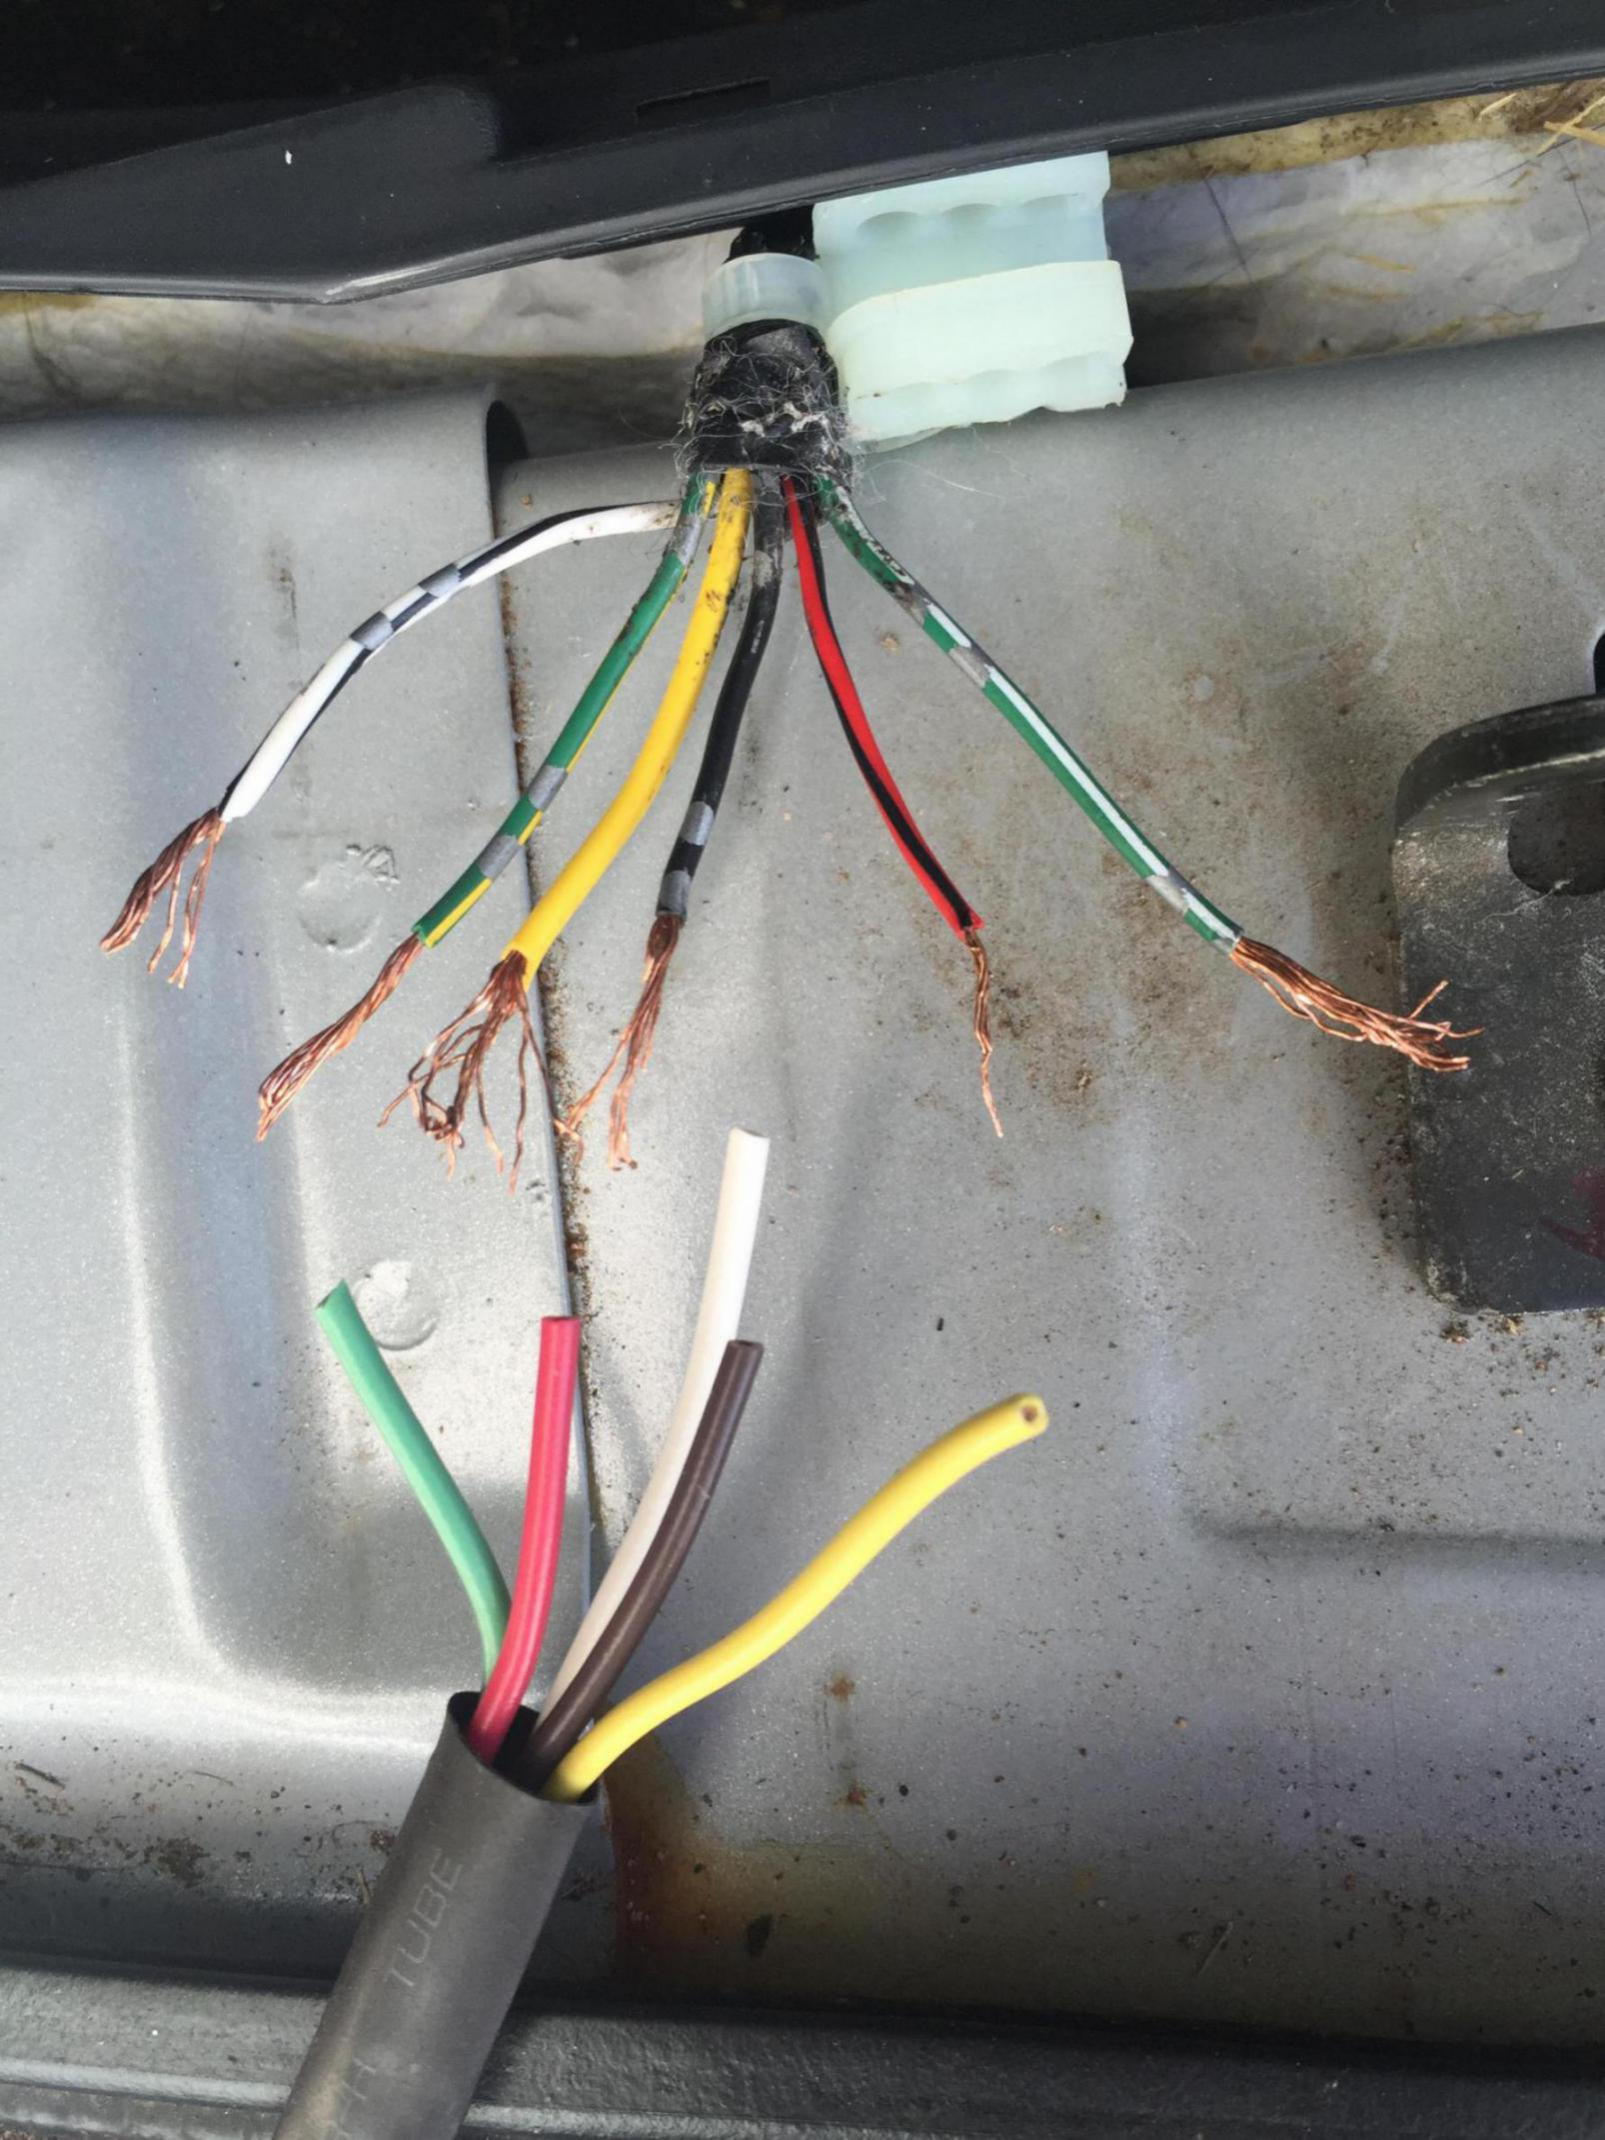 2012 Honda Pilot Trailer Wiring Trusted Diagram Harness Melted Online Schematic U2022 Rear Window Wiper